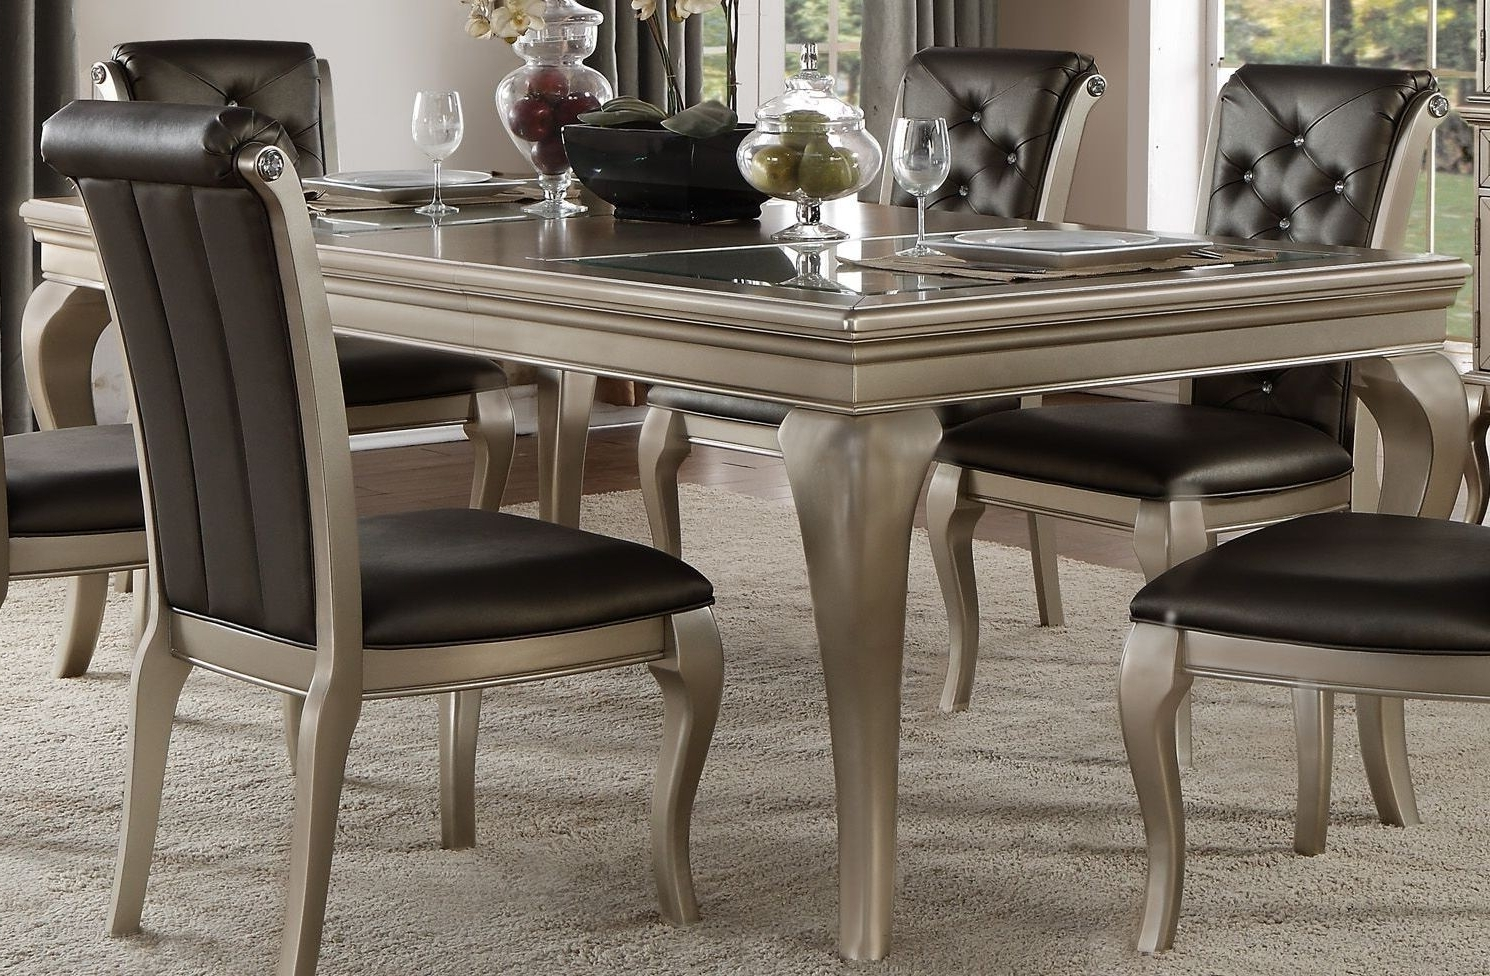 Newest Homelegance Crawford Silver Extendable Dining Room Set – Crawford With Regard To Crawford 6 Piece Rectangle Dining Sets (View 3 of 25)